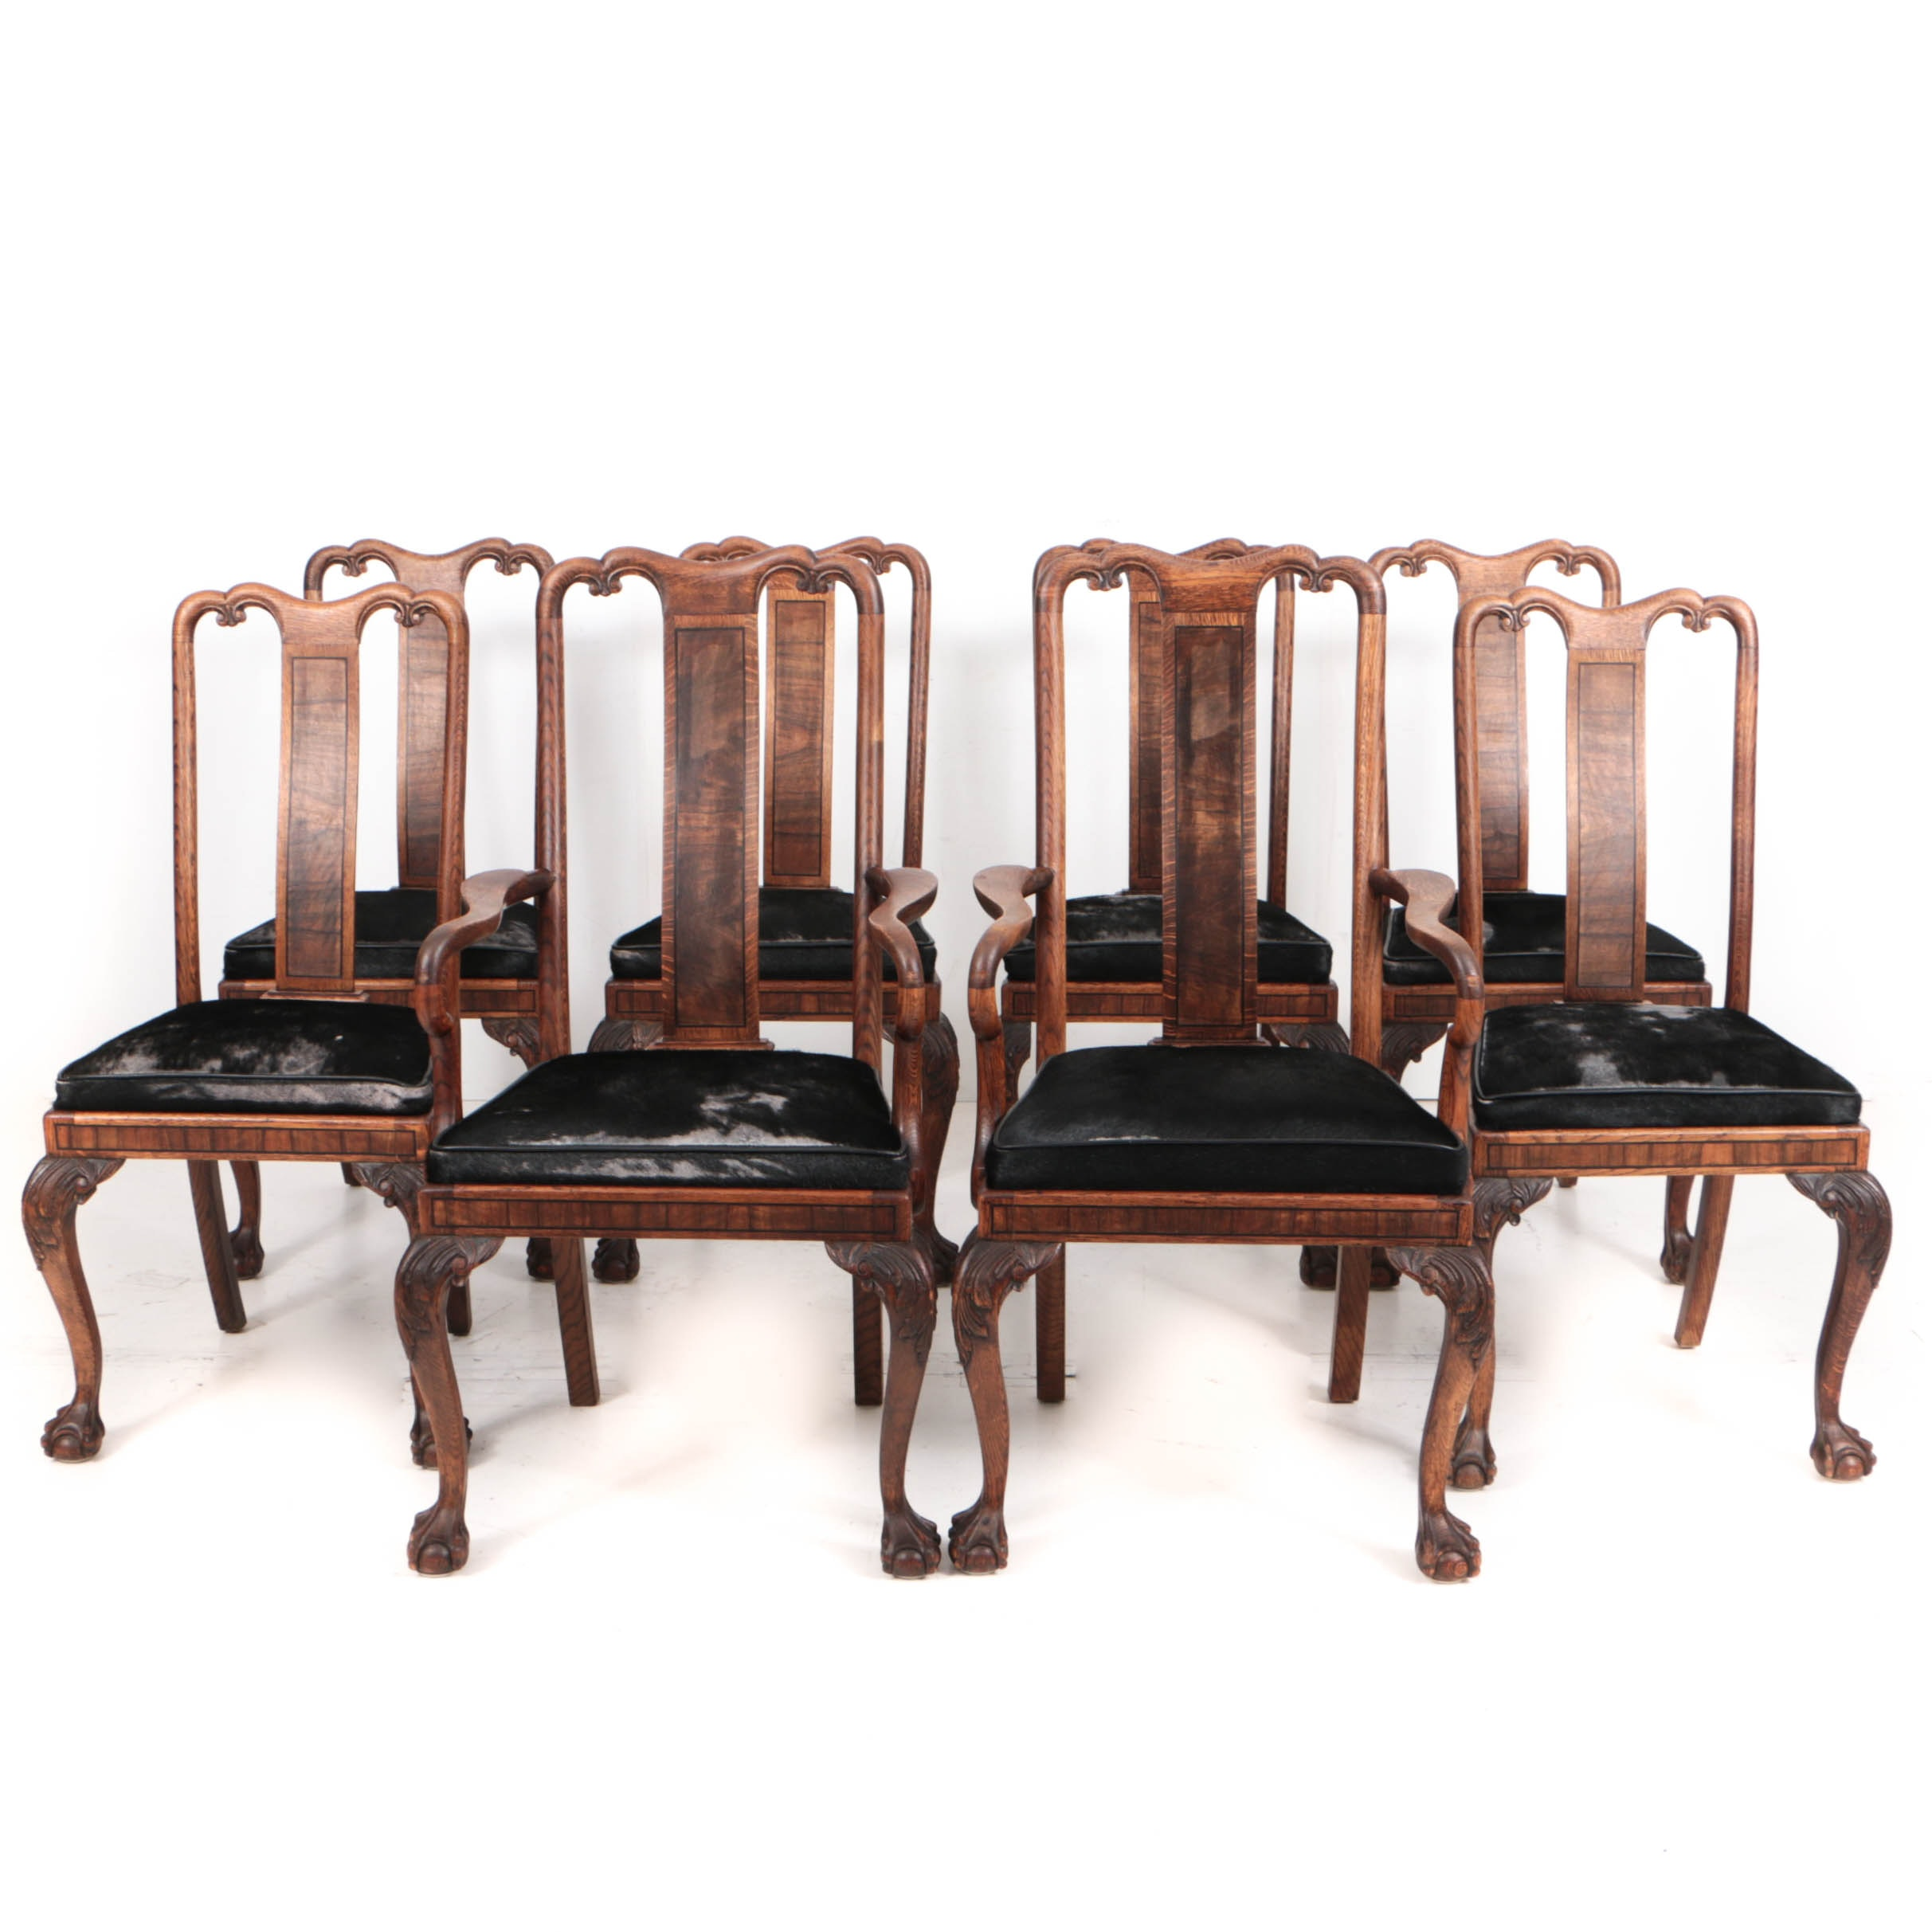 Eight George II Style Oak and Walnut Chairs with Hide Seats, 20th Century